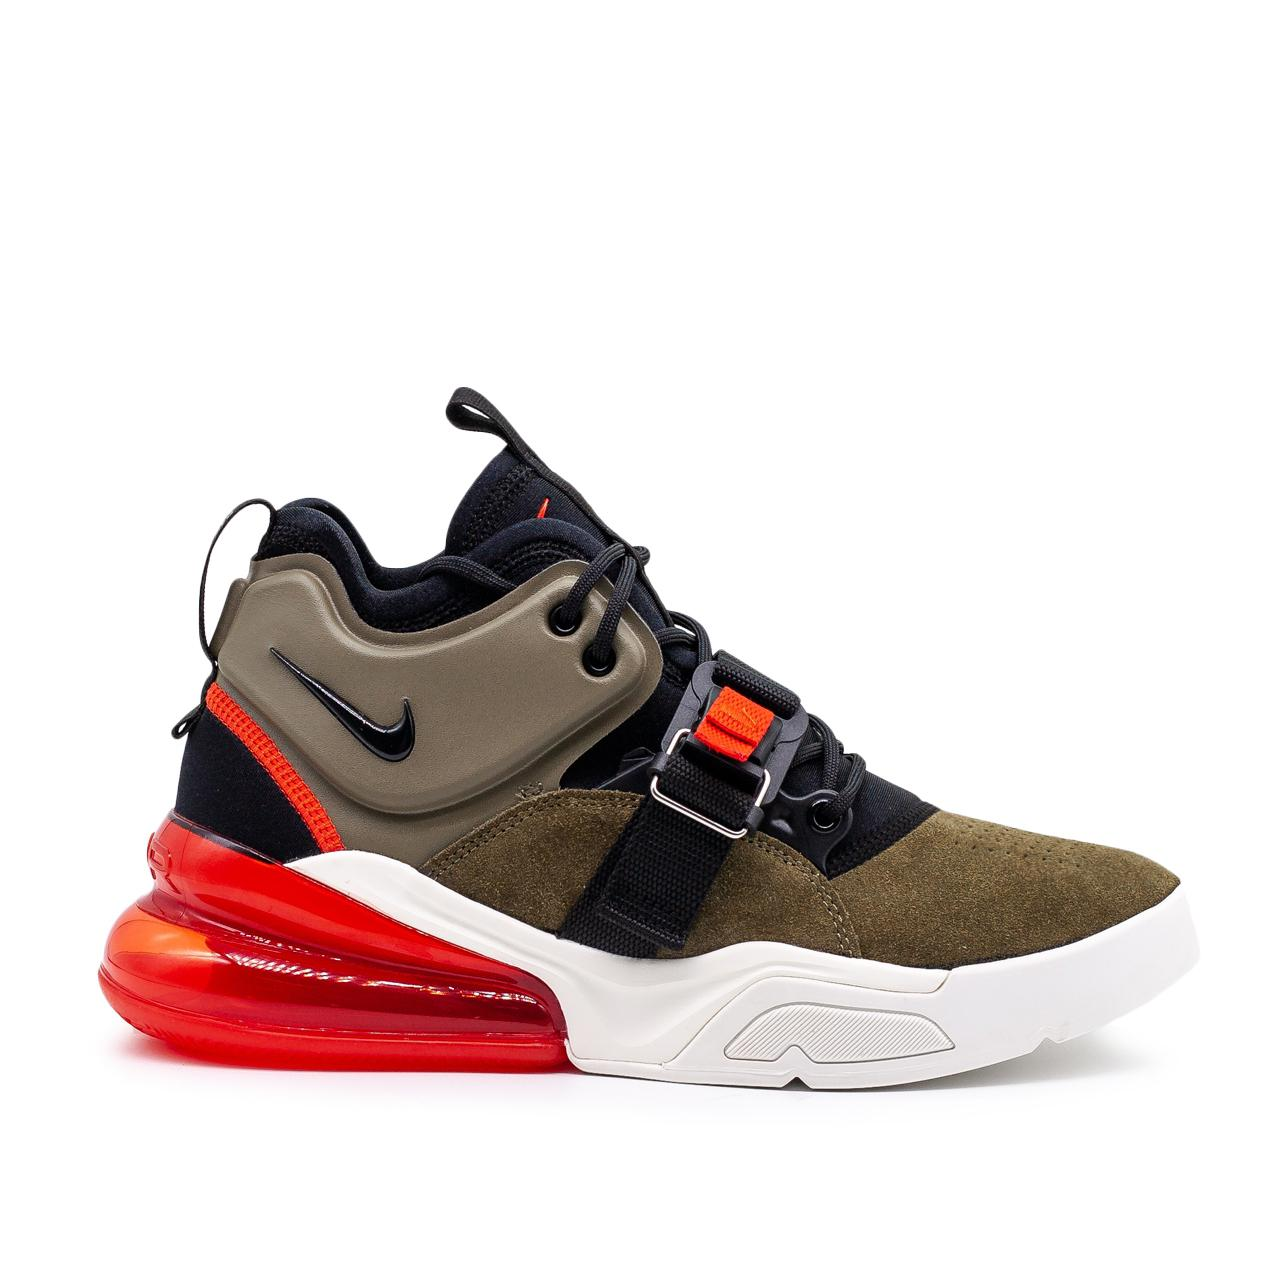 Nike Air Force 270 Shoes - Size 8 for